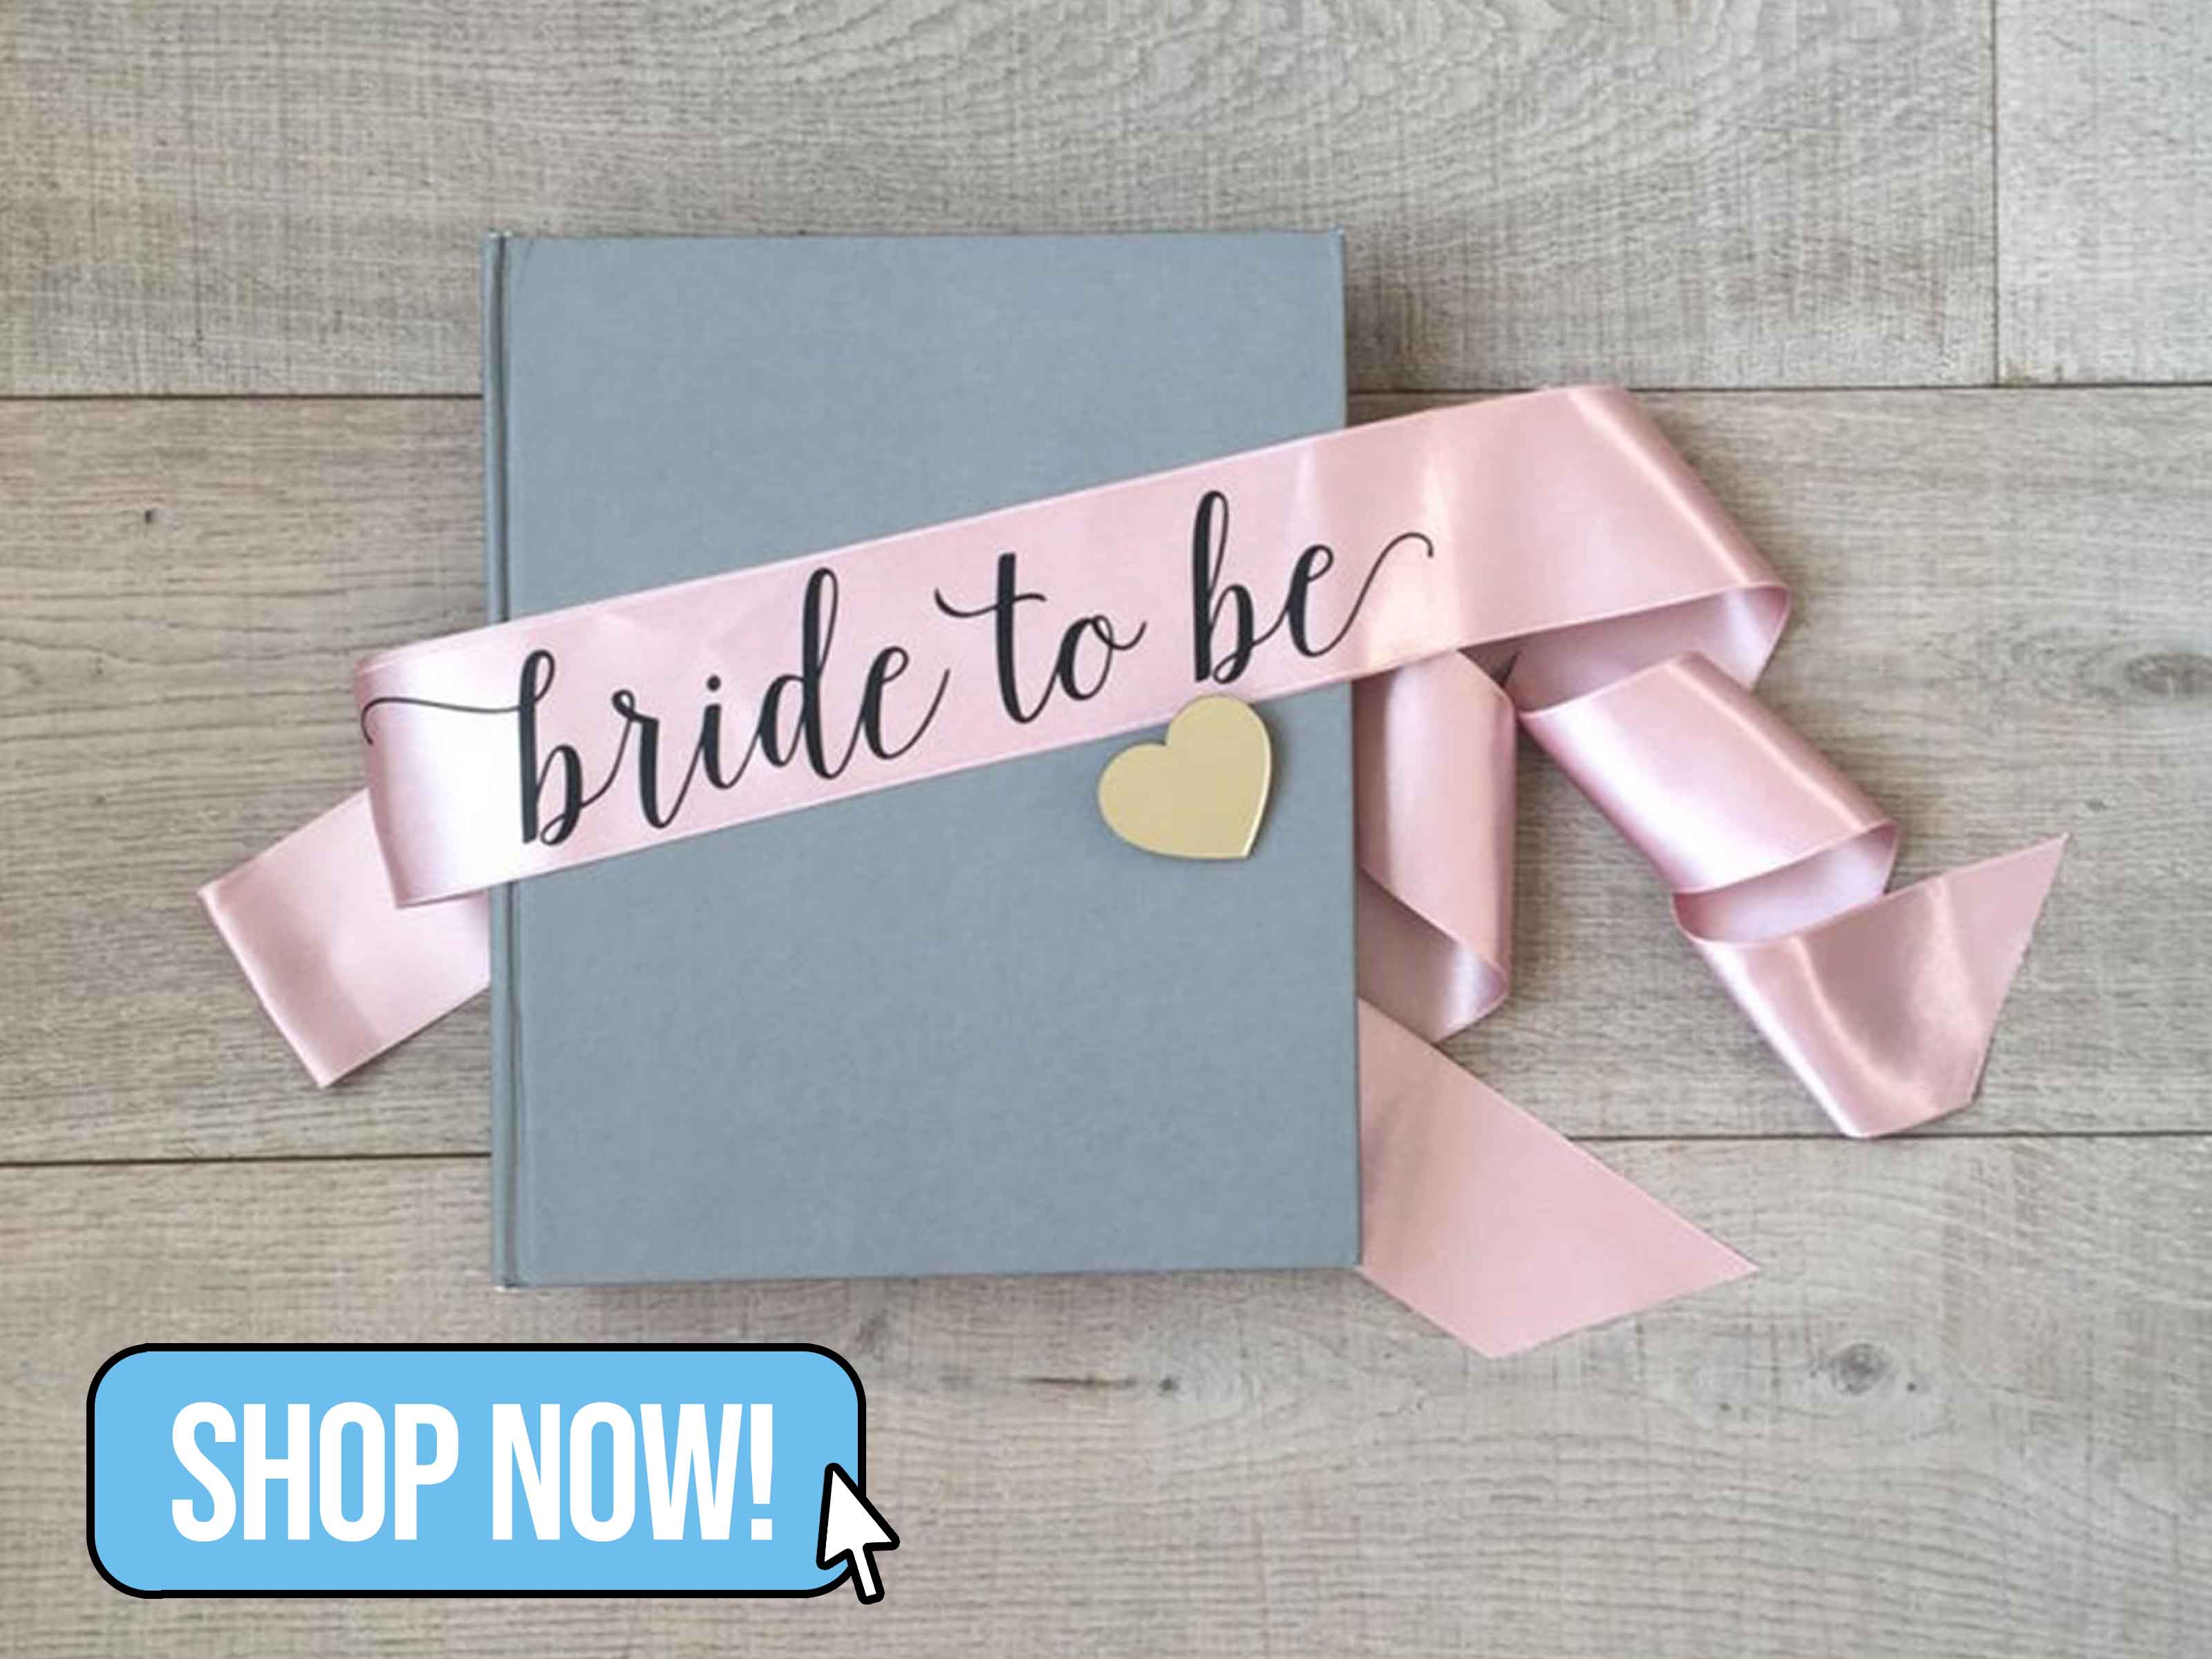 Bride To Be Sash - HopStudio